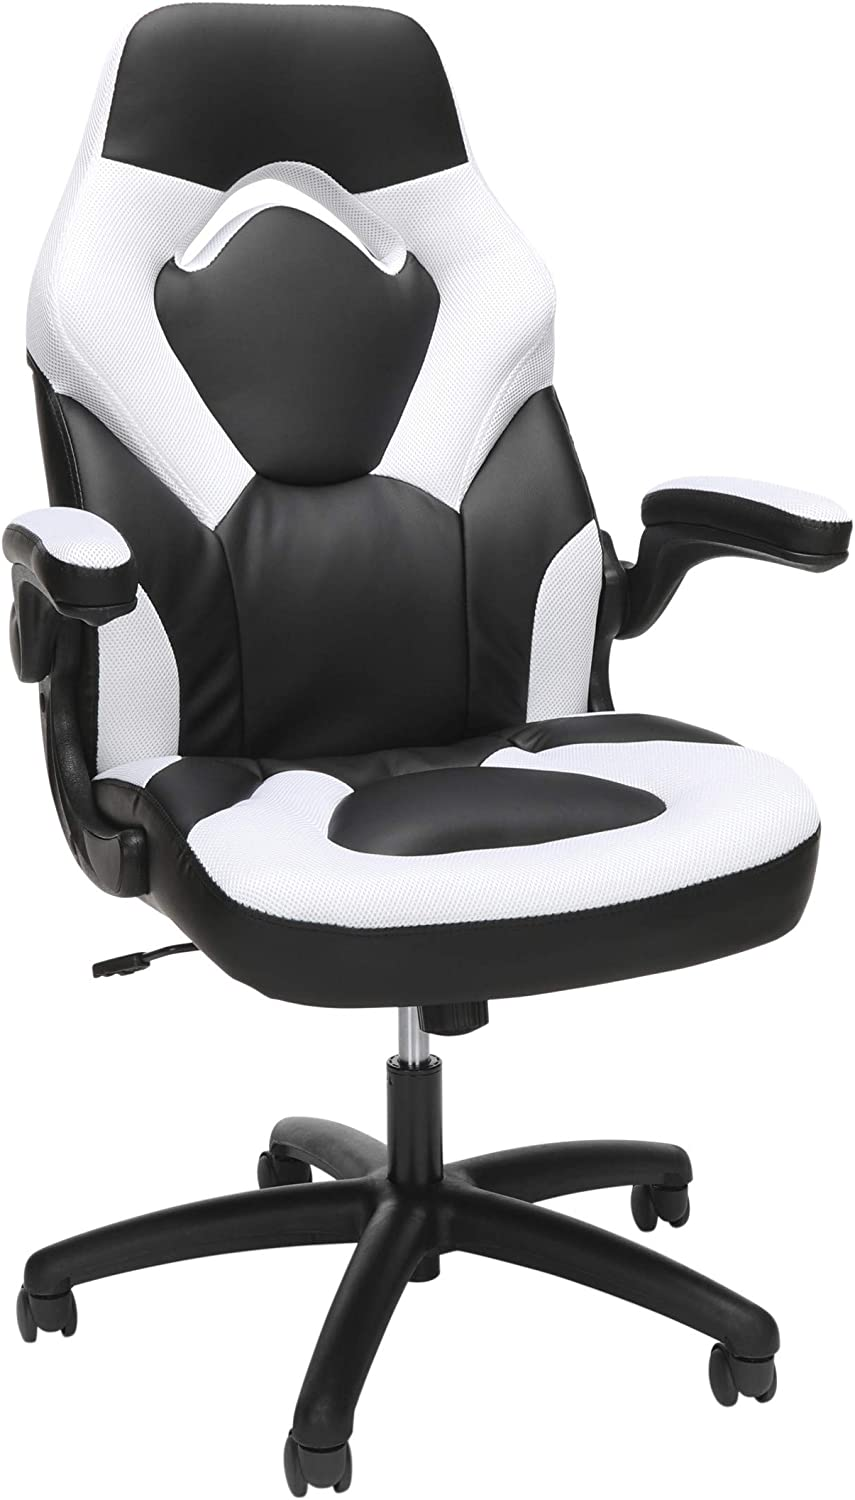 OFM ESS Collection Gaming Chair Review